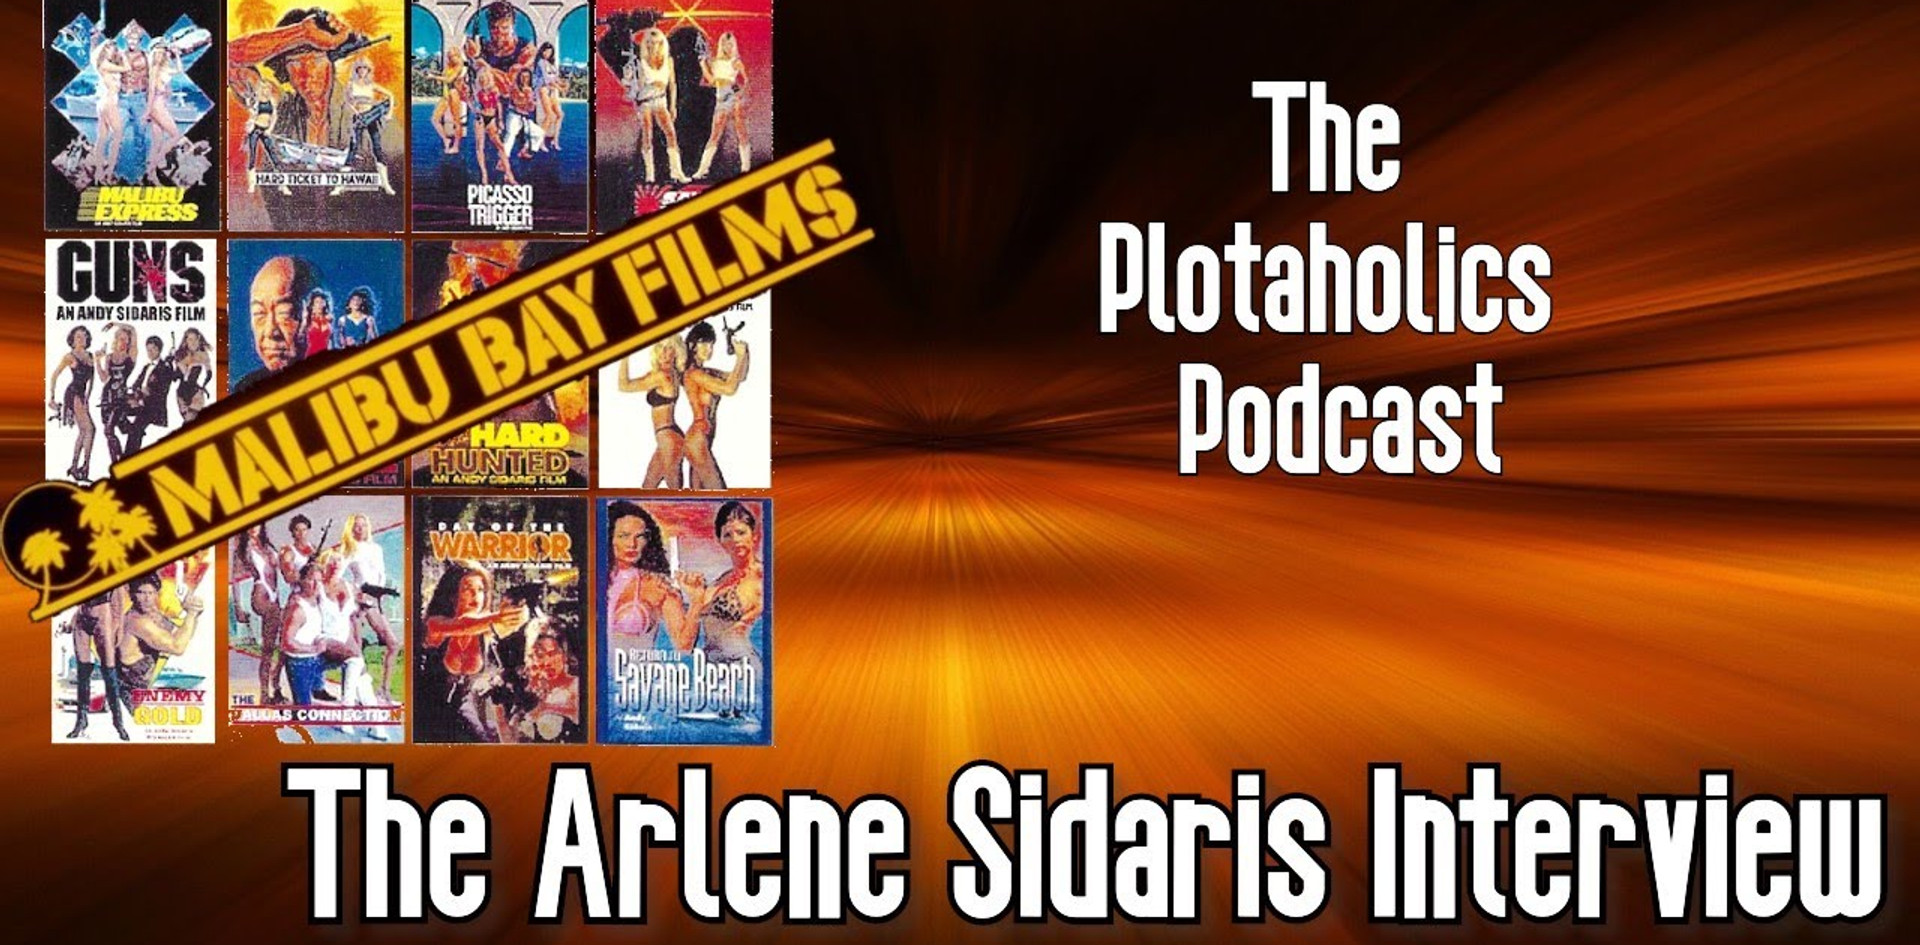 The Plotaholics Podcast Interview with Arlene Sidaris